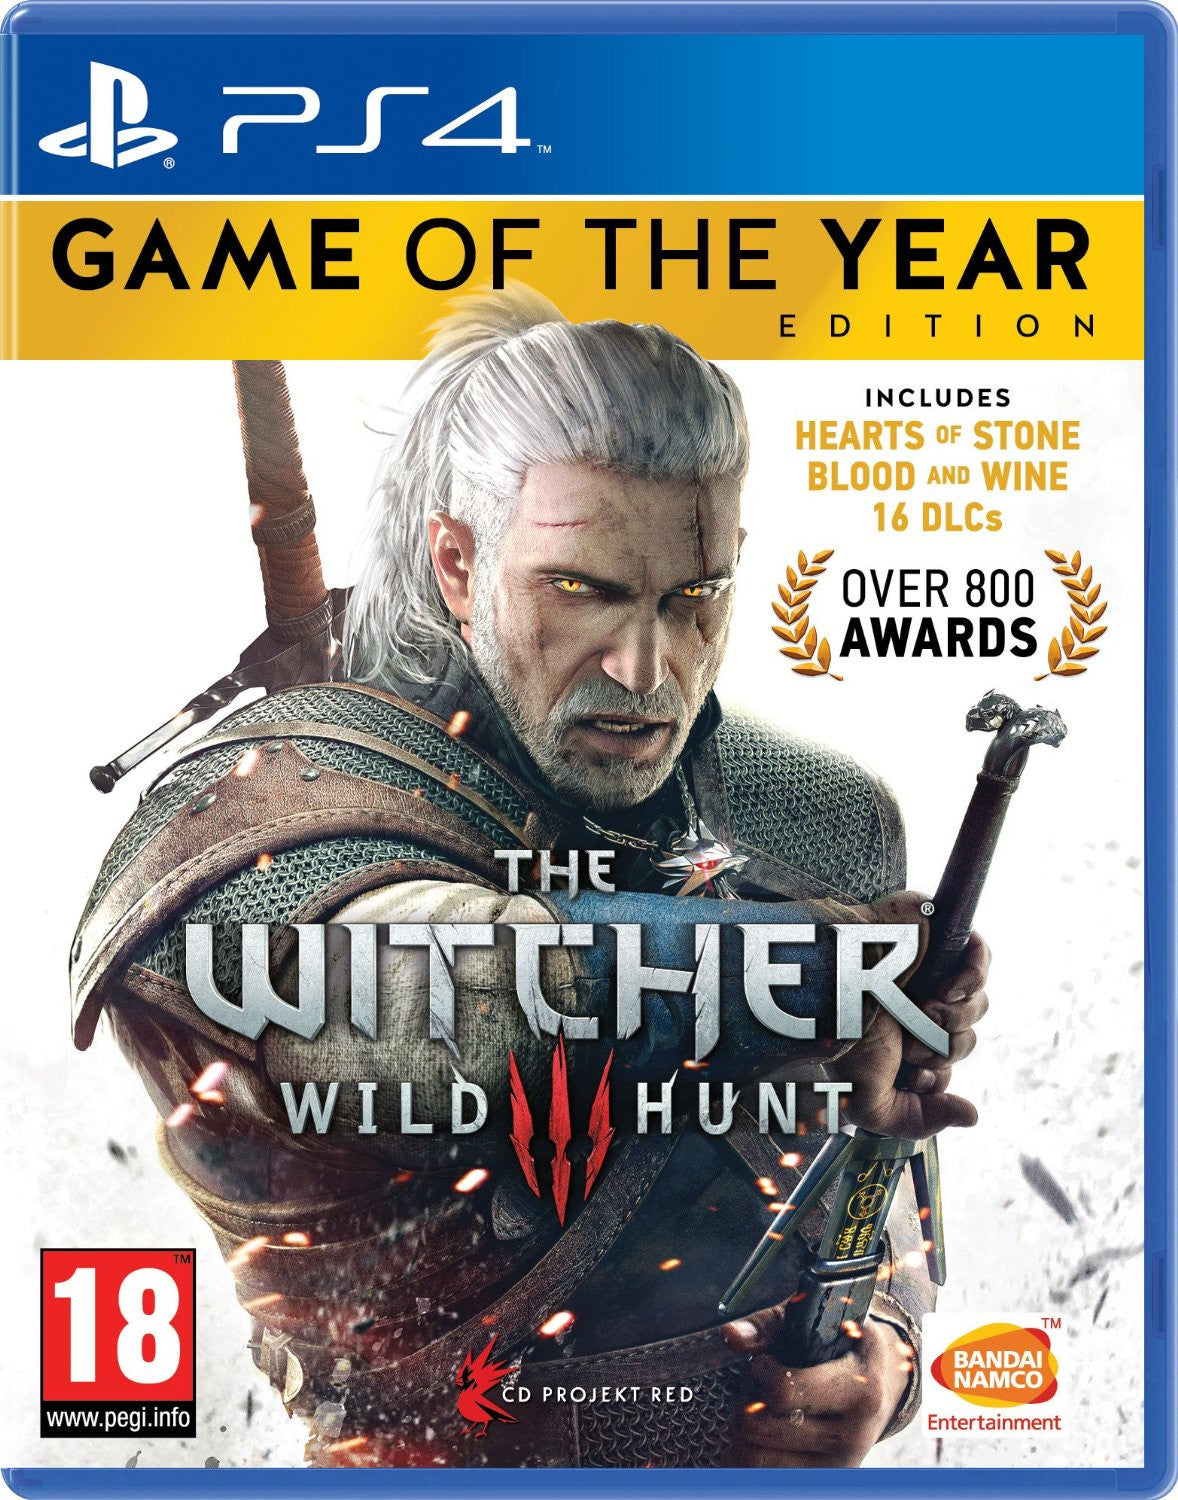 The Witcher 3: Wild Hunt - Video Games by Bandai Namco Entertainment The Chelsea Gamer